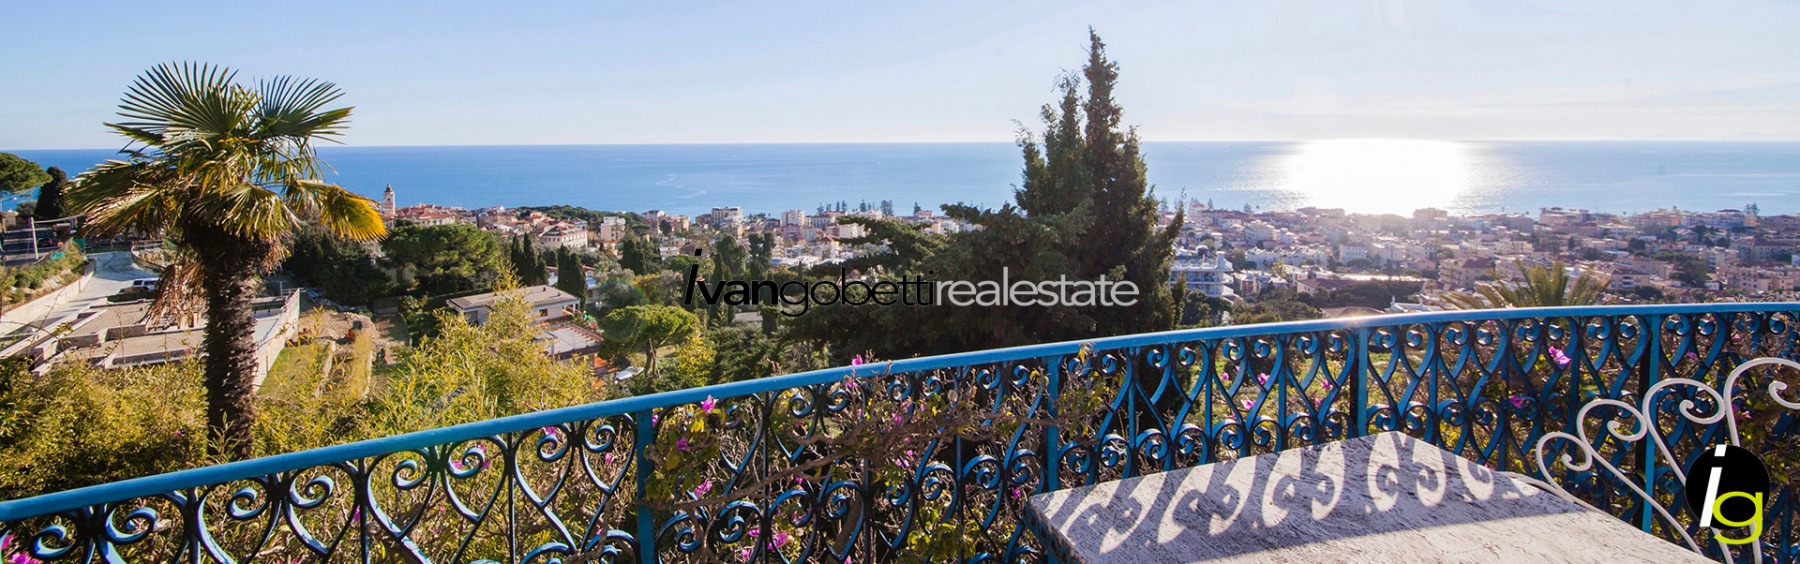 Liguria, Bordighera splendid luxury villa for sale